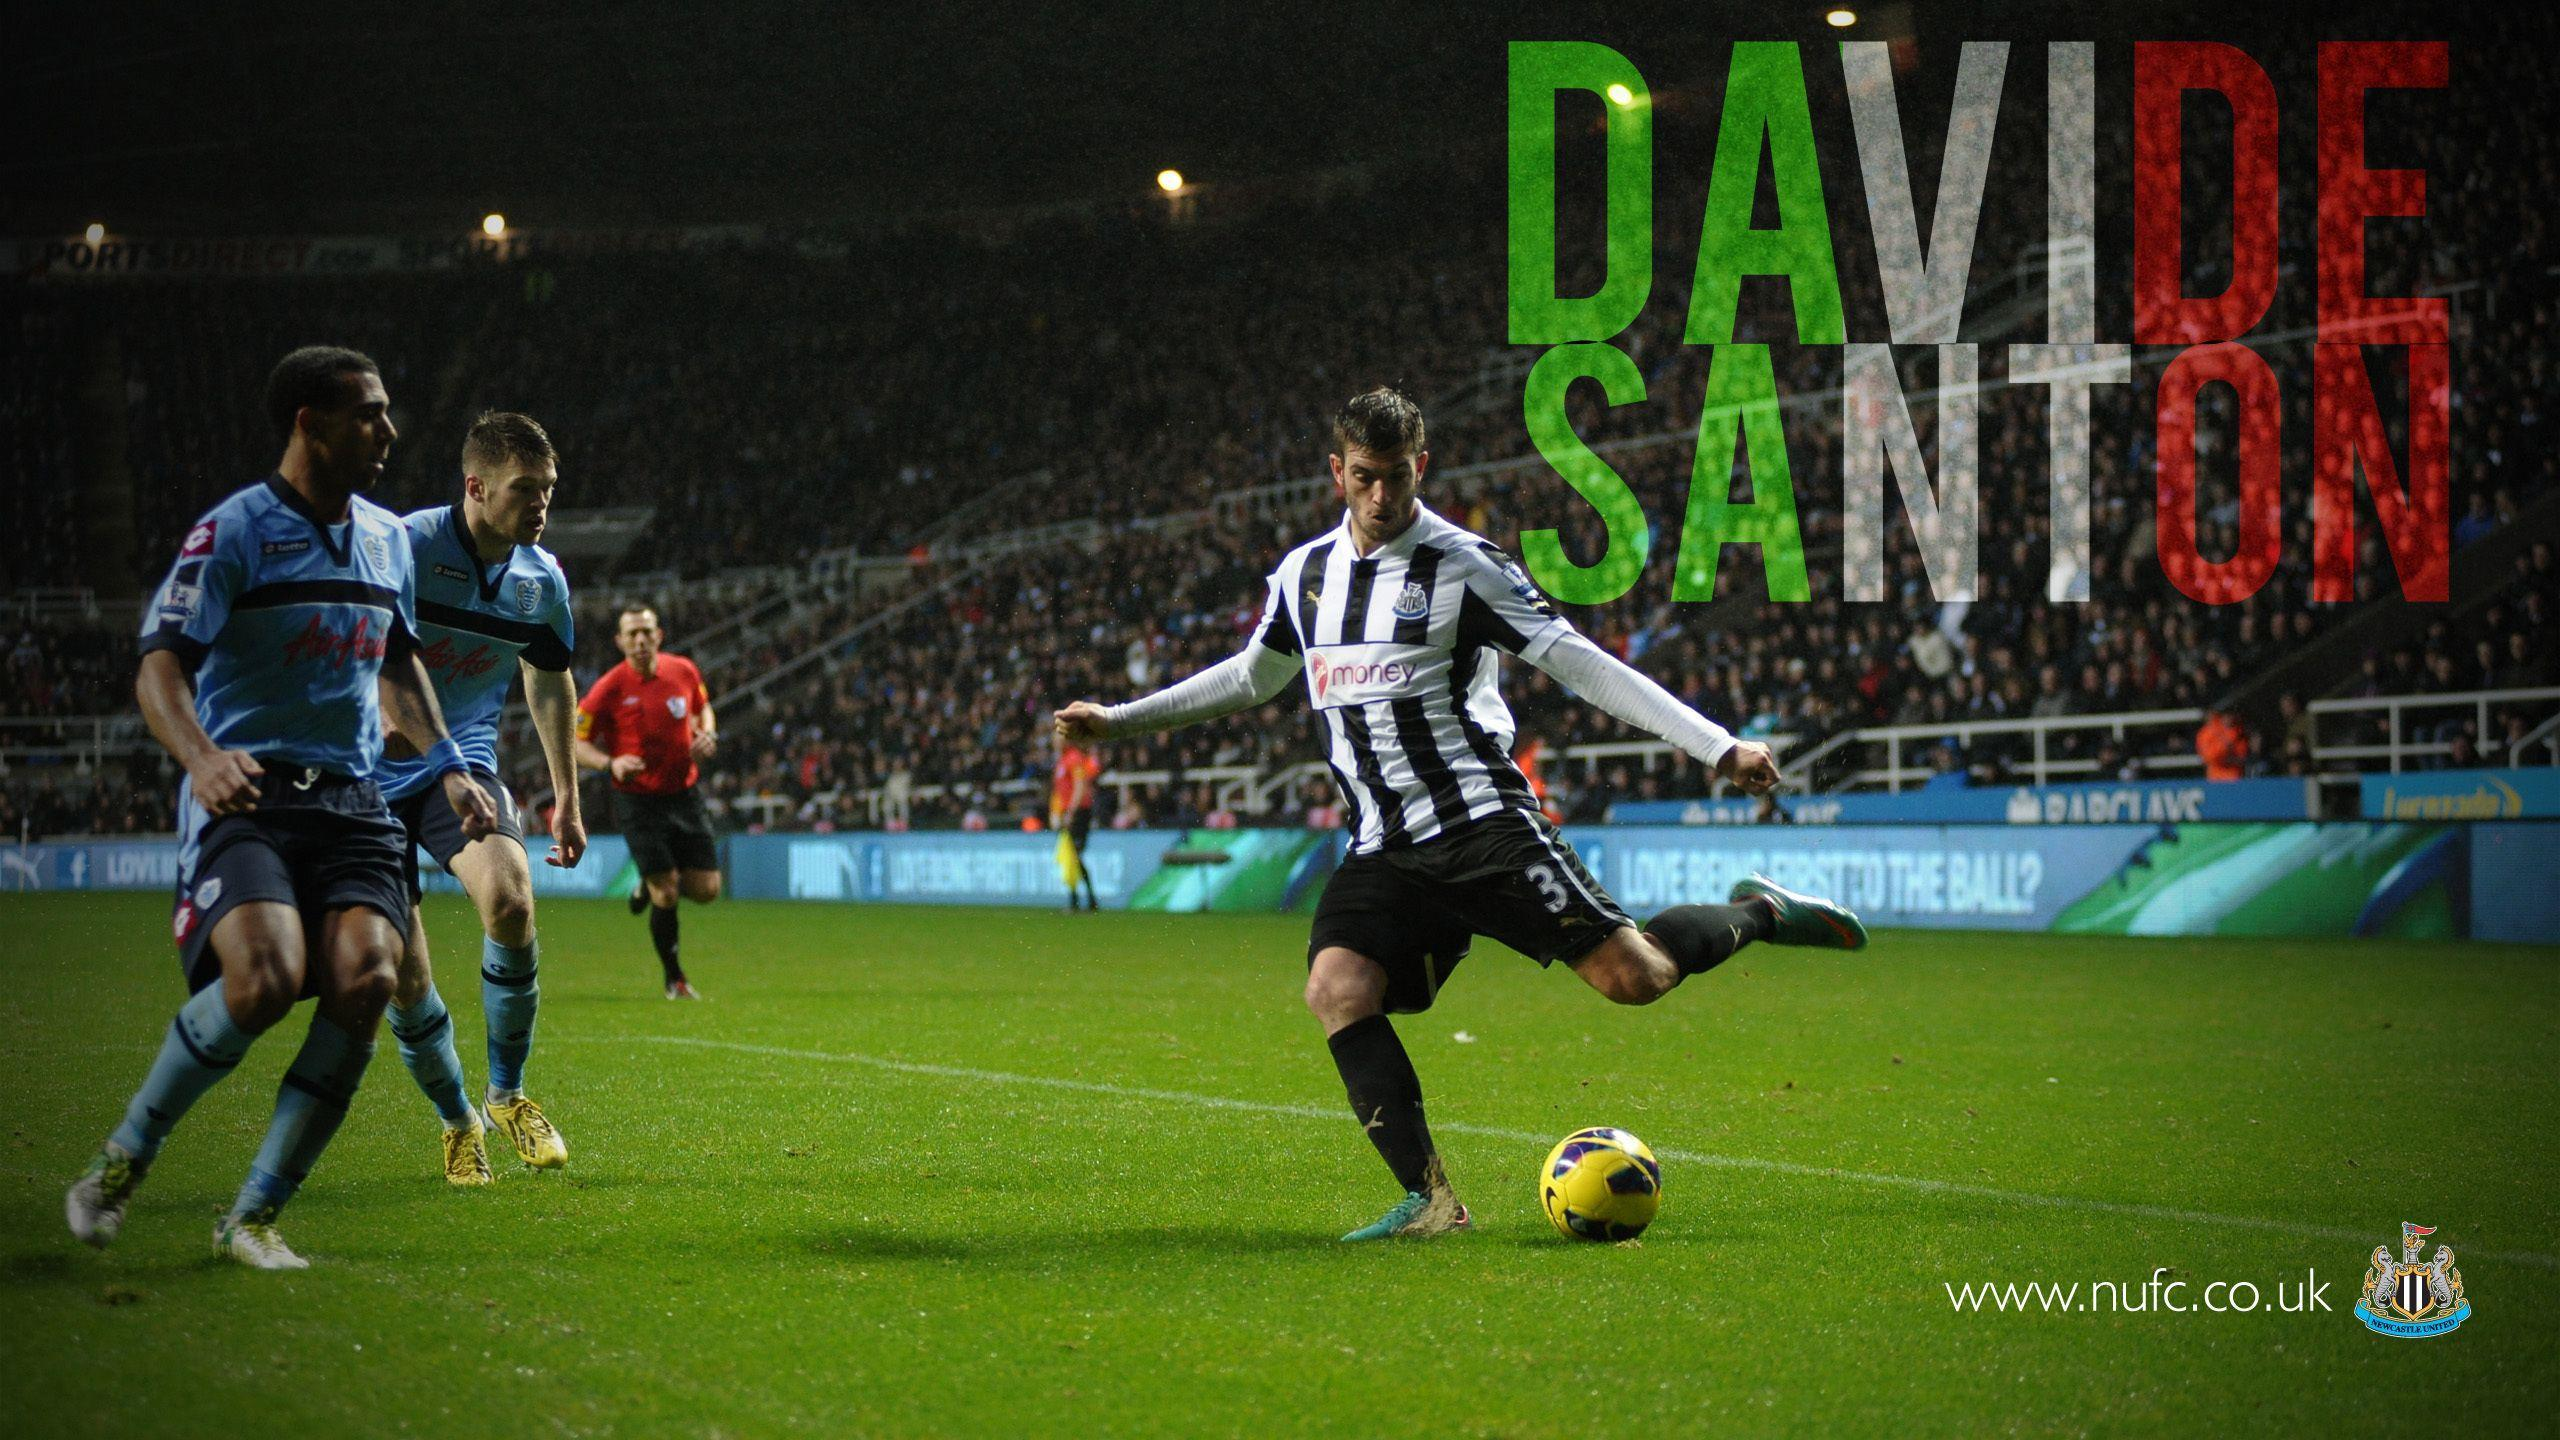 Newcastle United wallpapers and images - wallpapers, pictures, photos